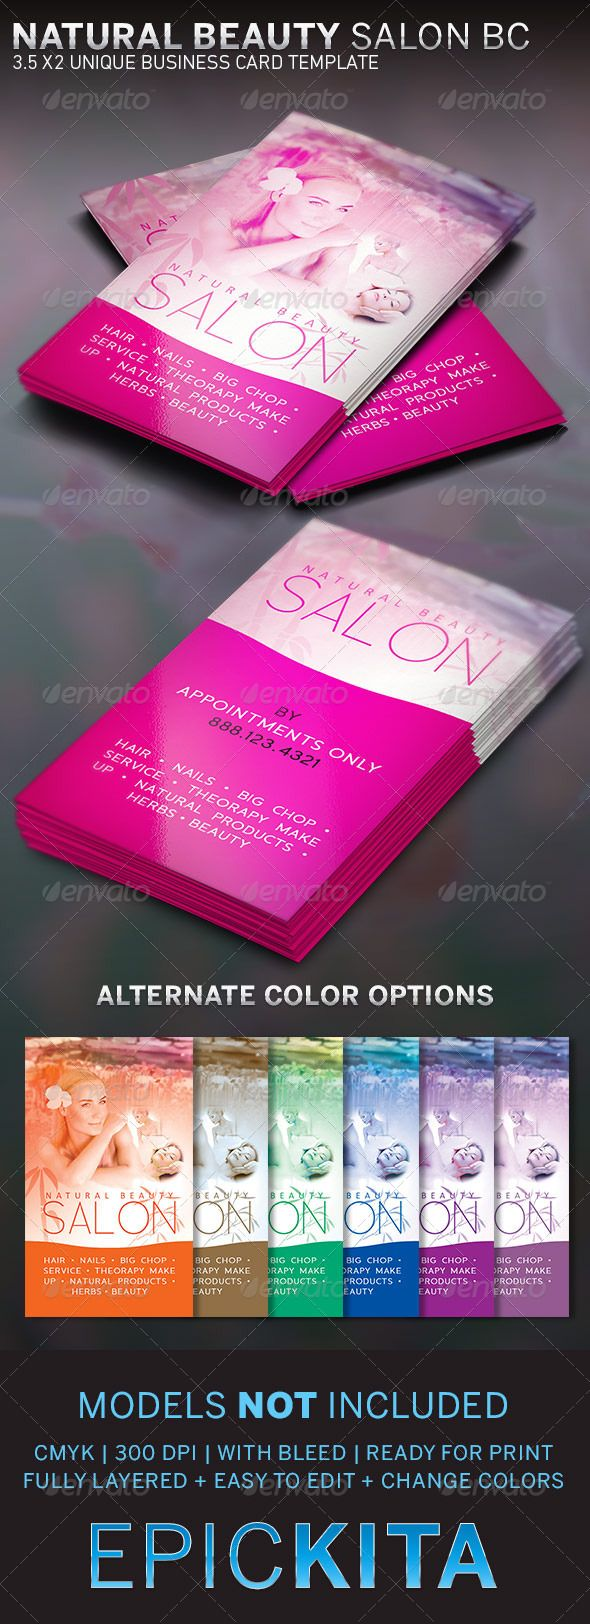 Beauty Salon And Spa Business Card Card Templates Business - Beauty salon business cards templates free